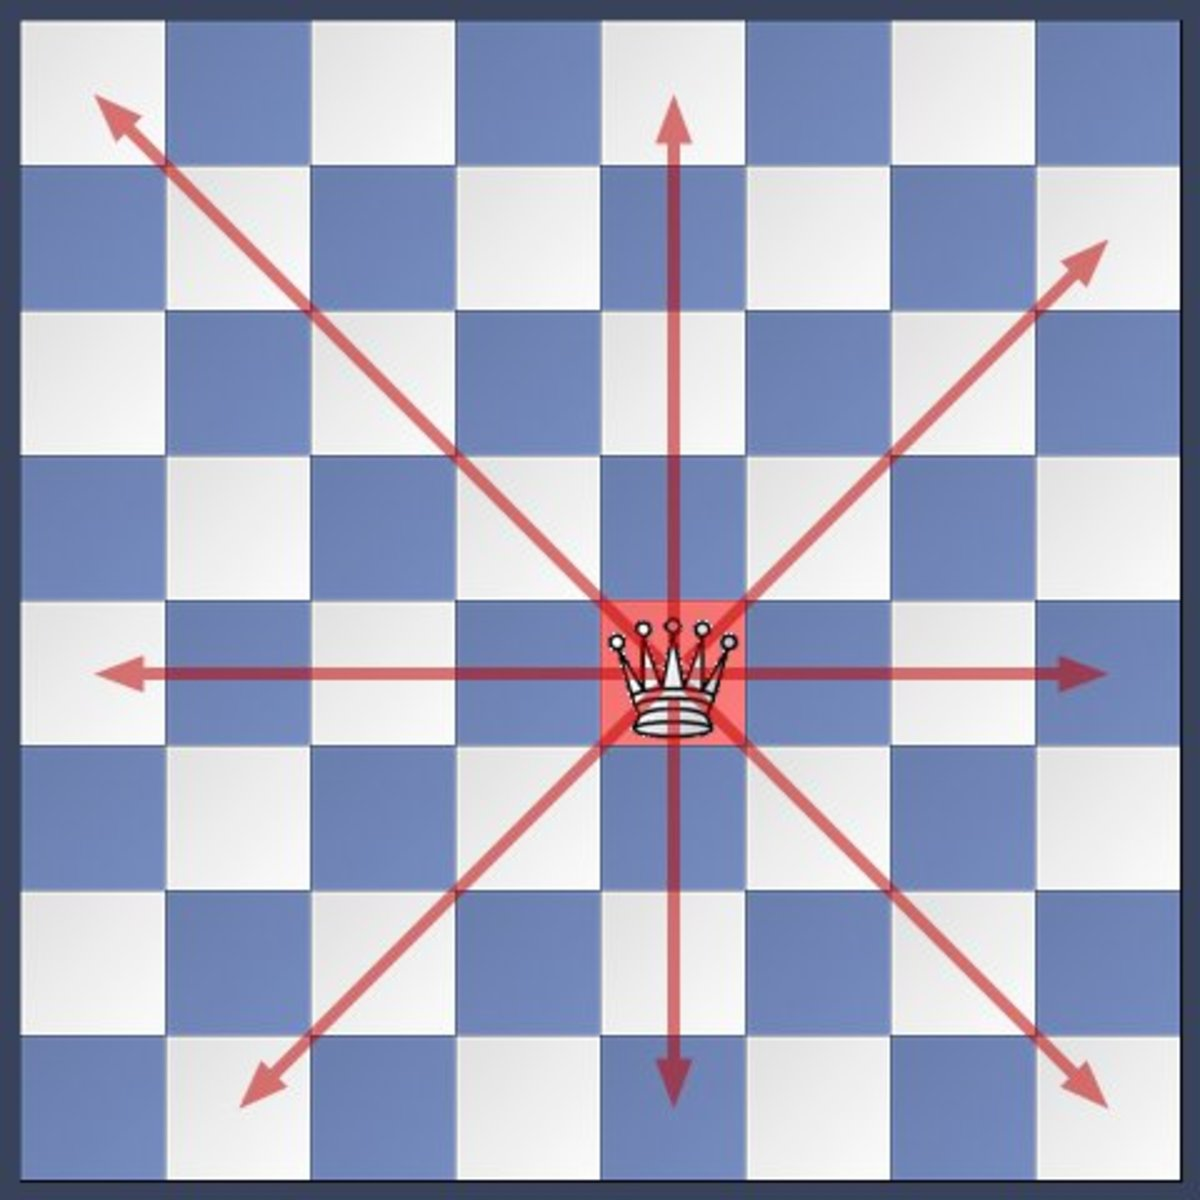 The queen can move to any square vertically, horizontally, or diagonally no matter the distance.